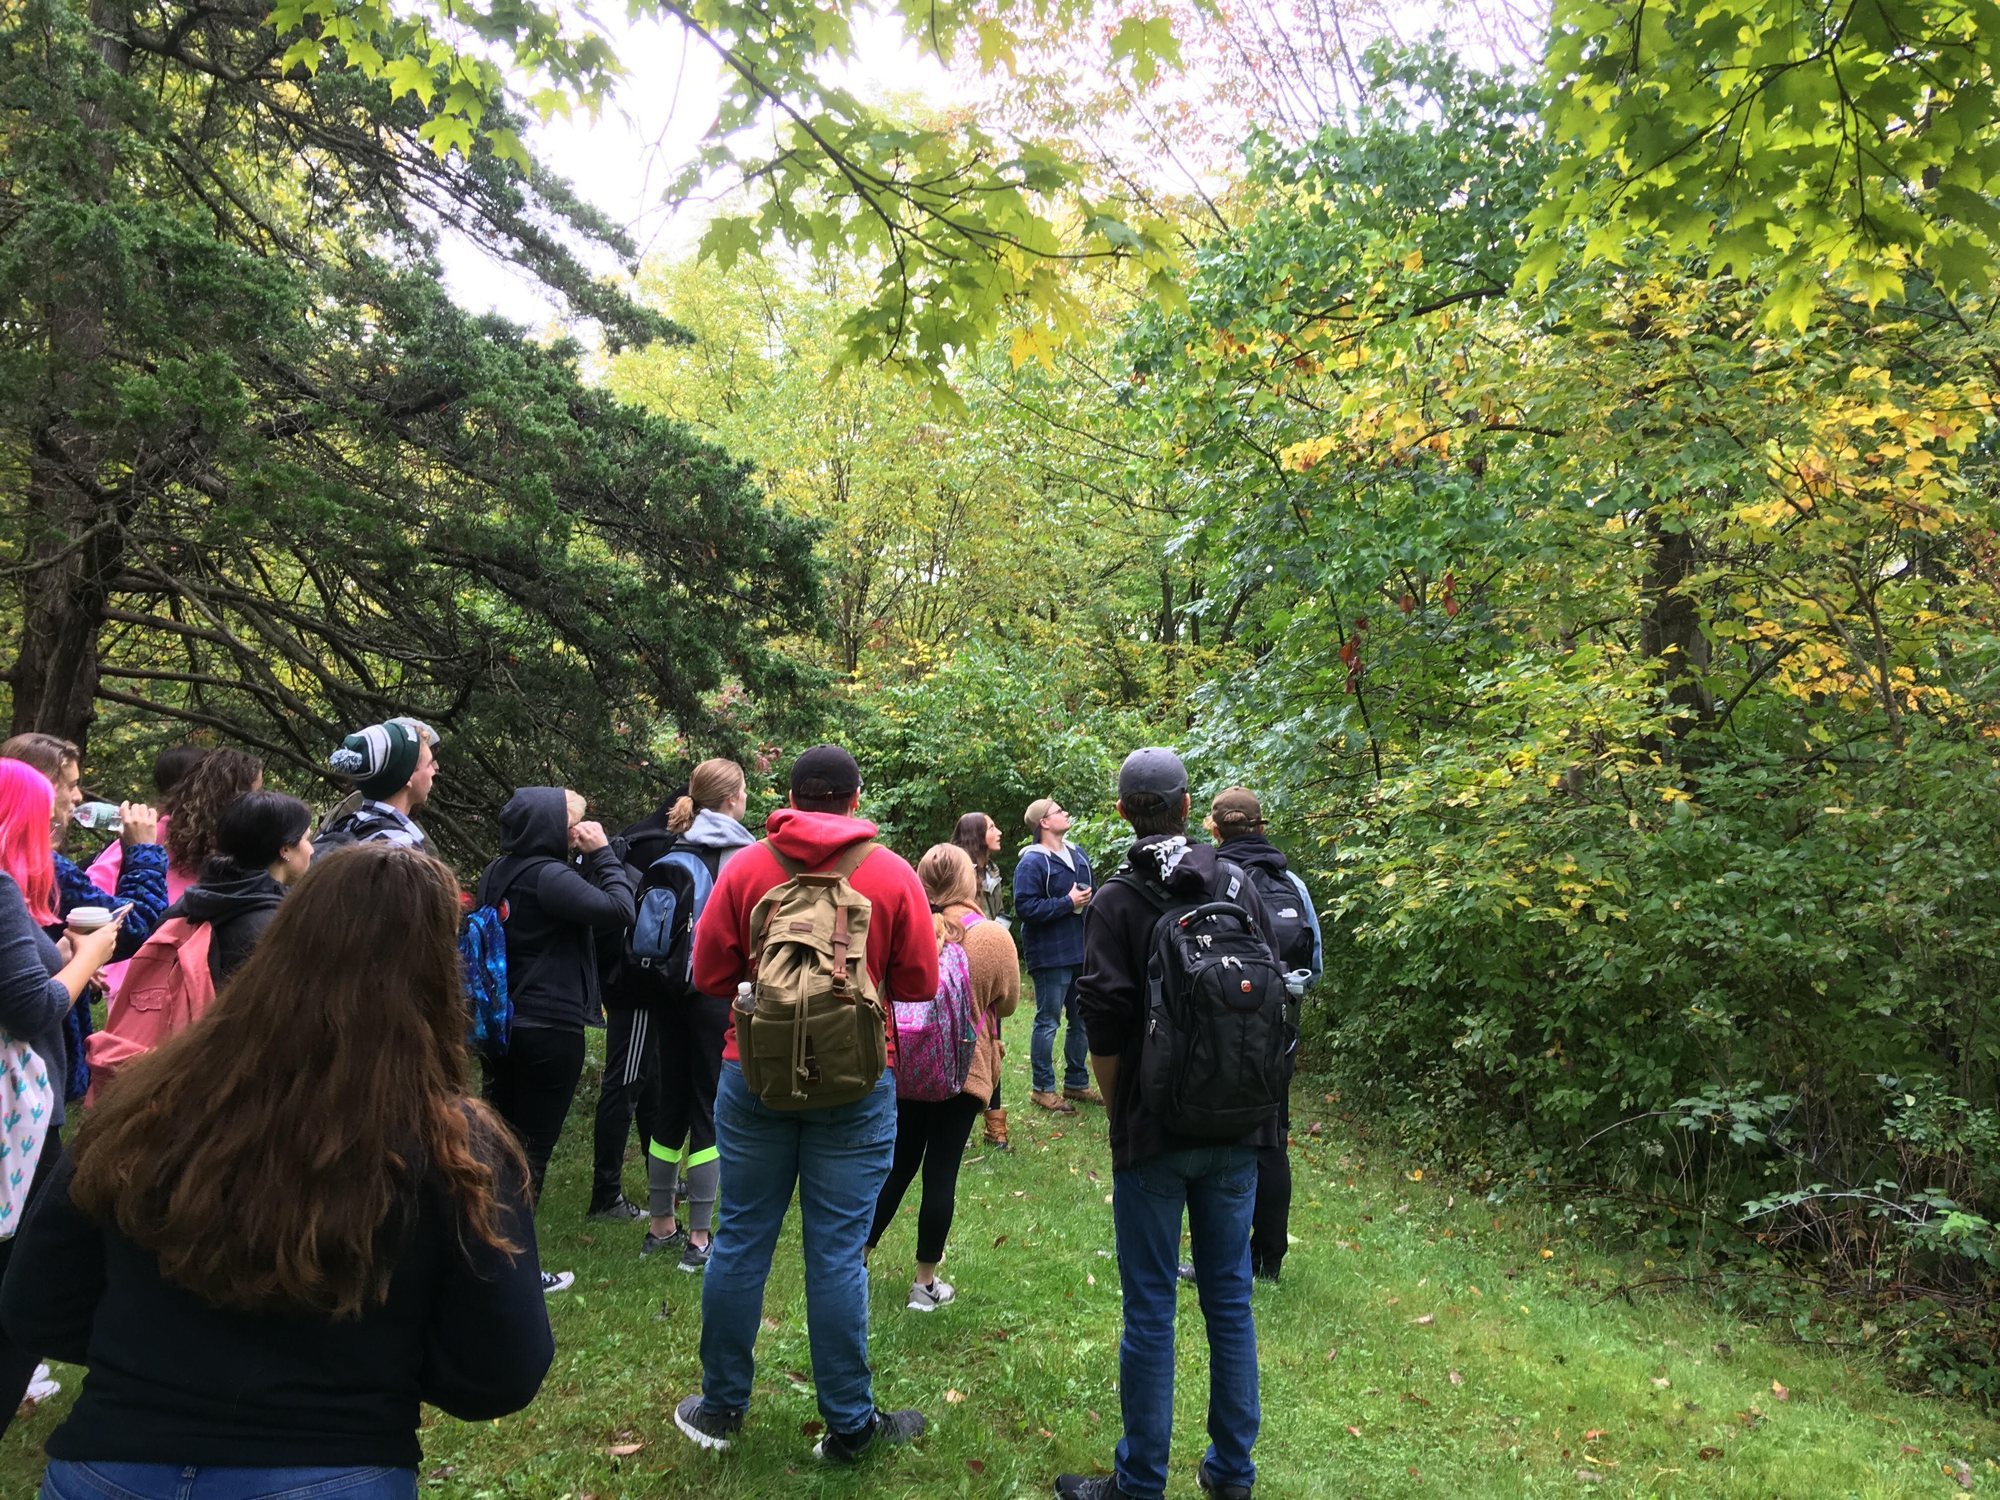 Students lead a tour of SUNY Geneseo's Spencer J. Roemer Arboretum